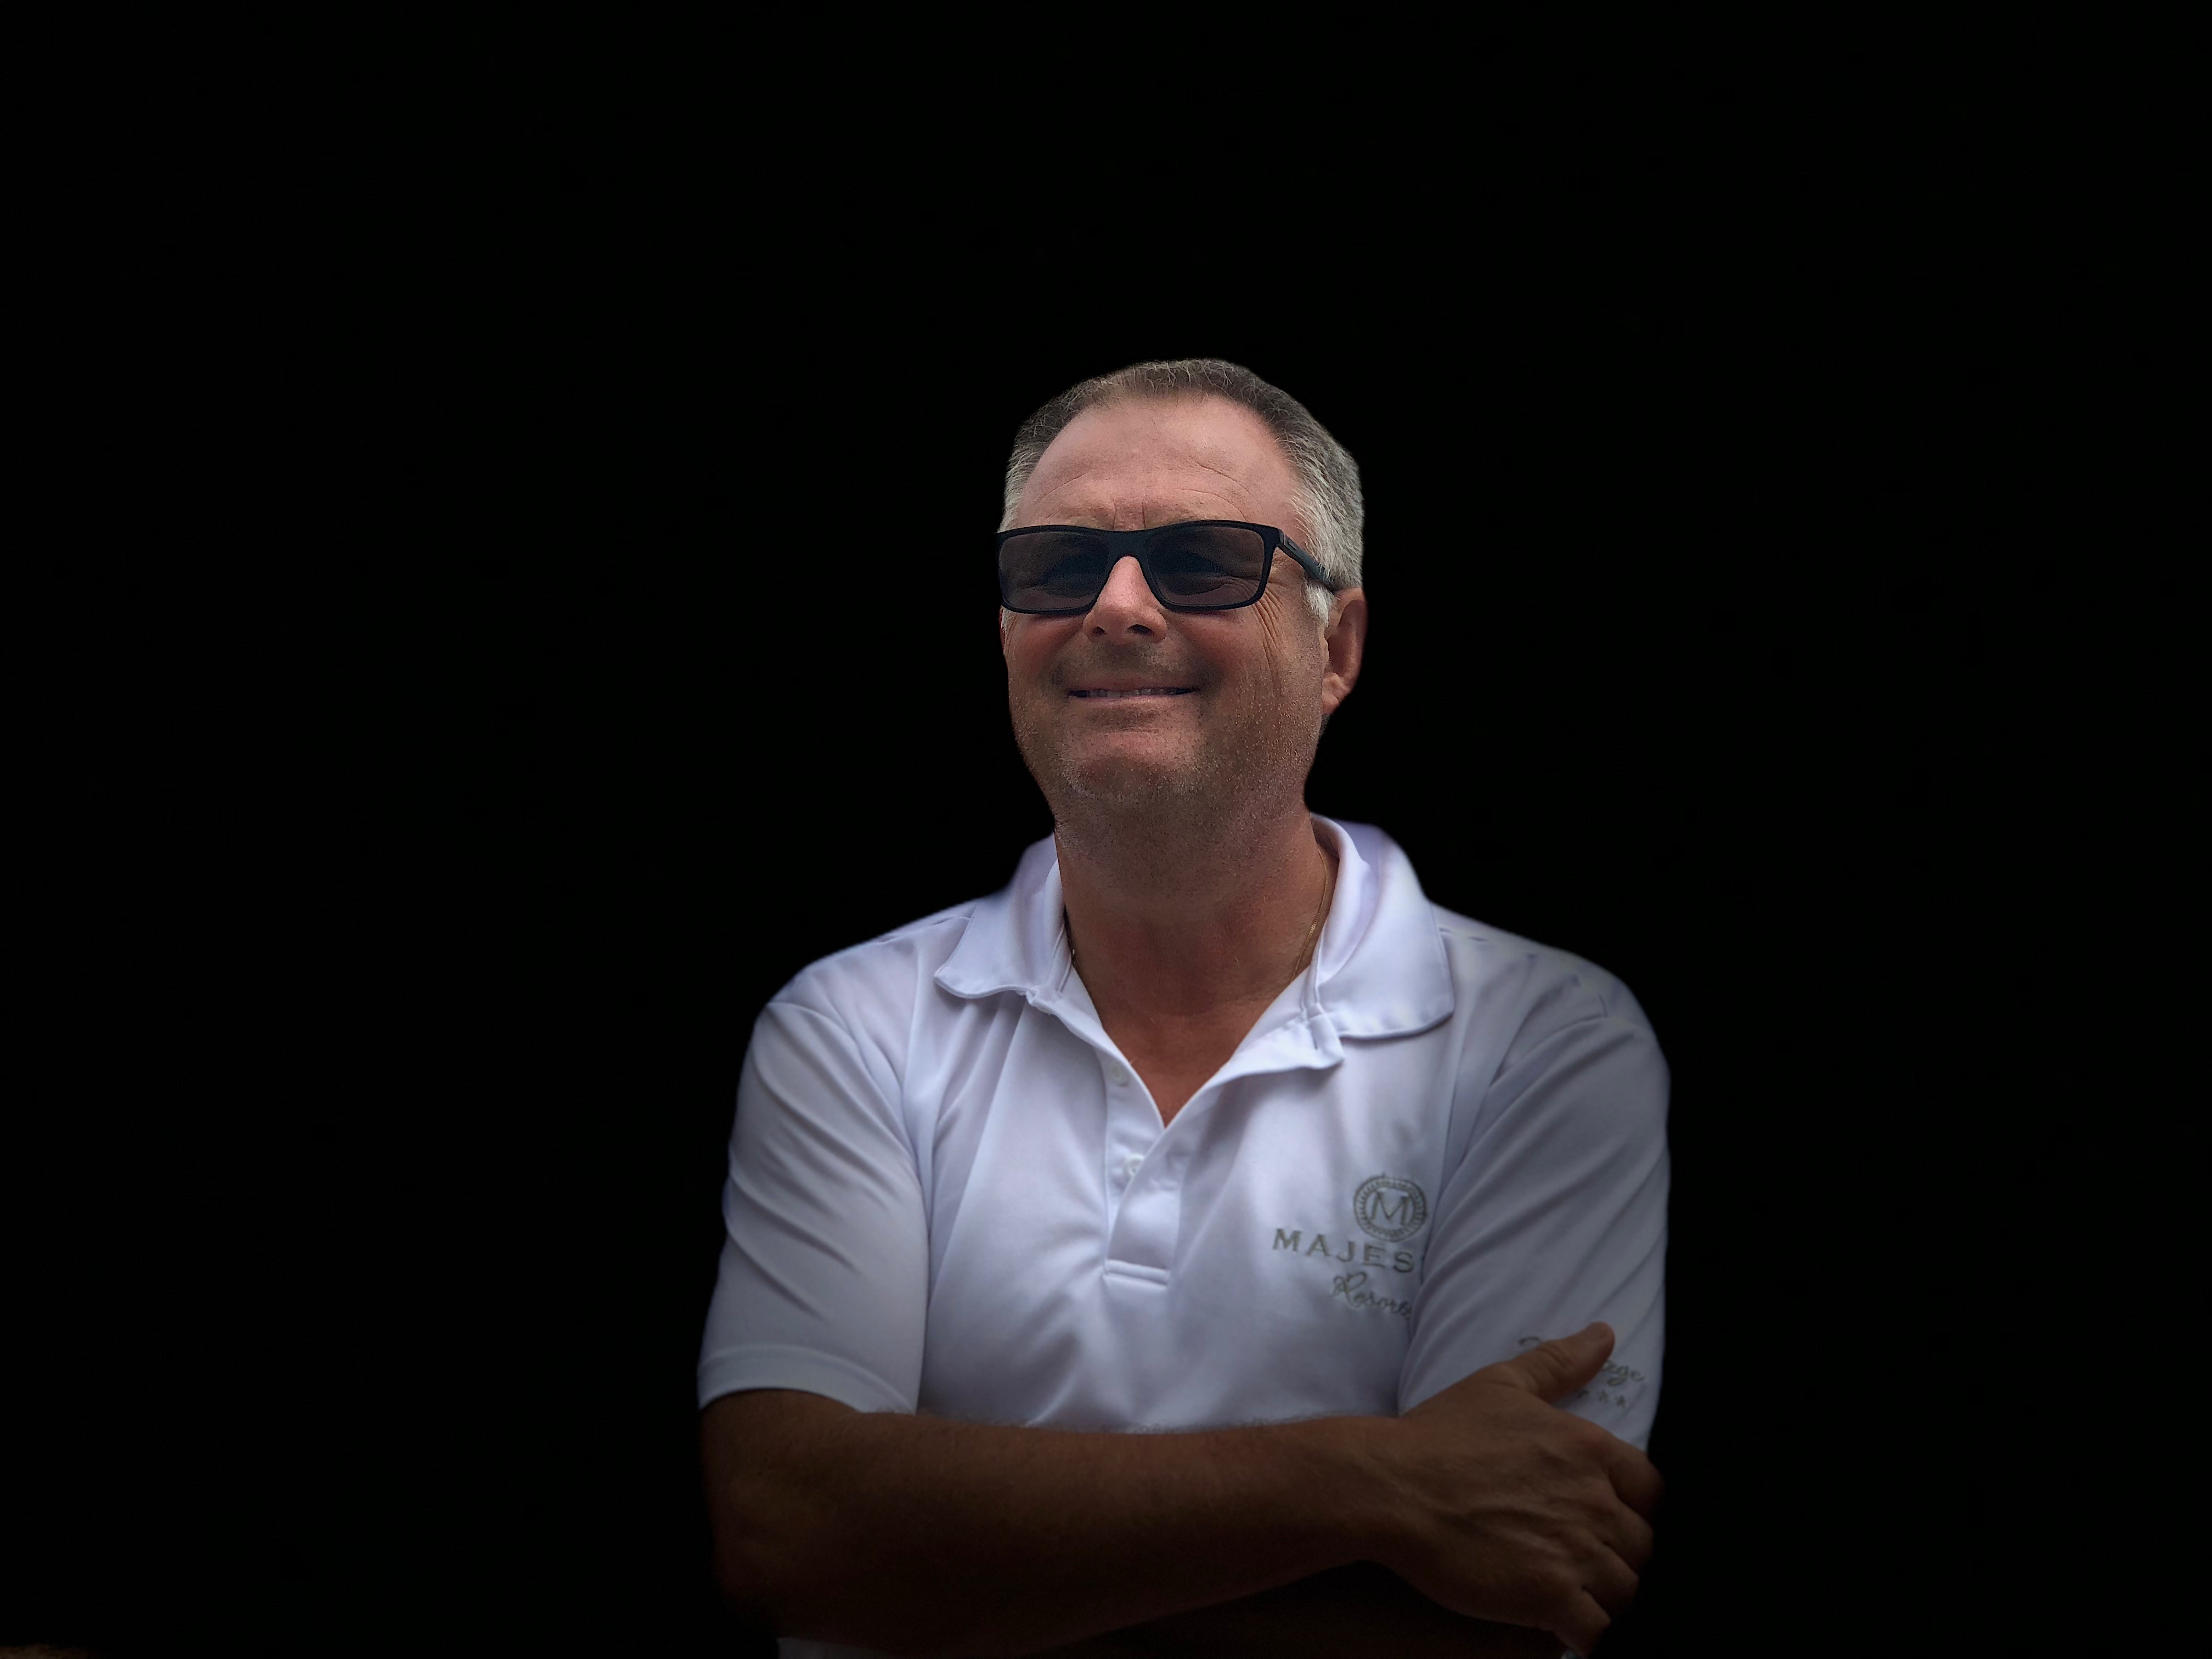 Avatar of golfer named Ulf Karaker